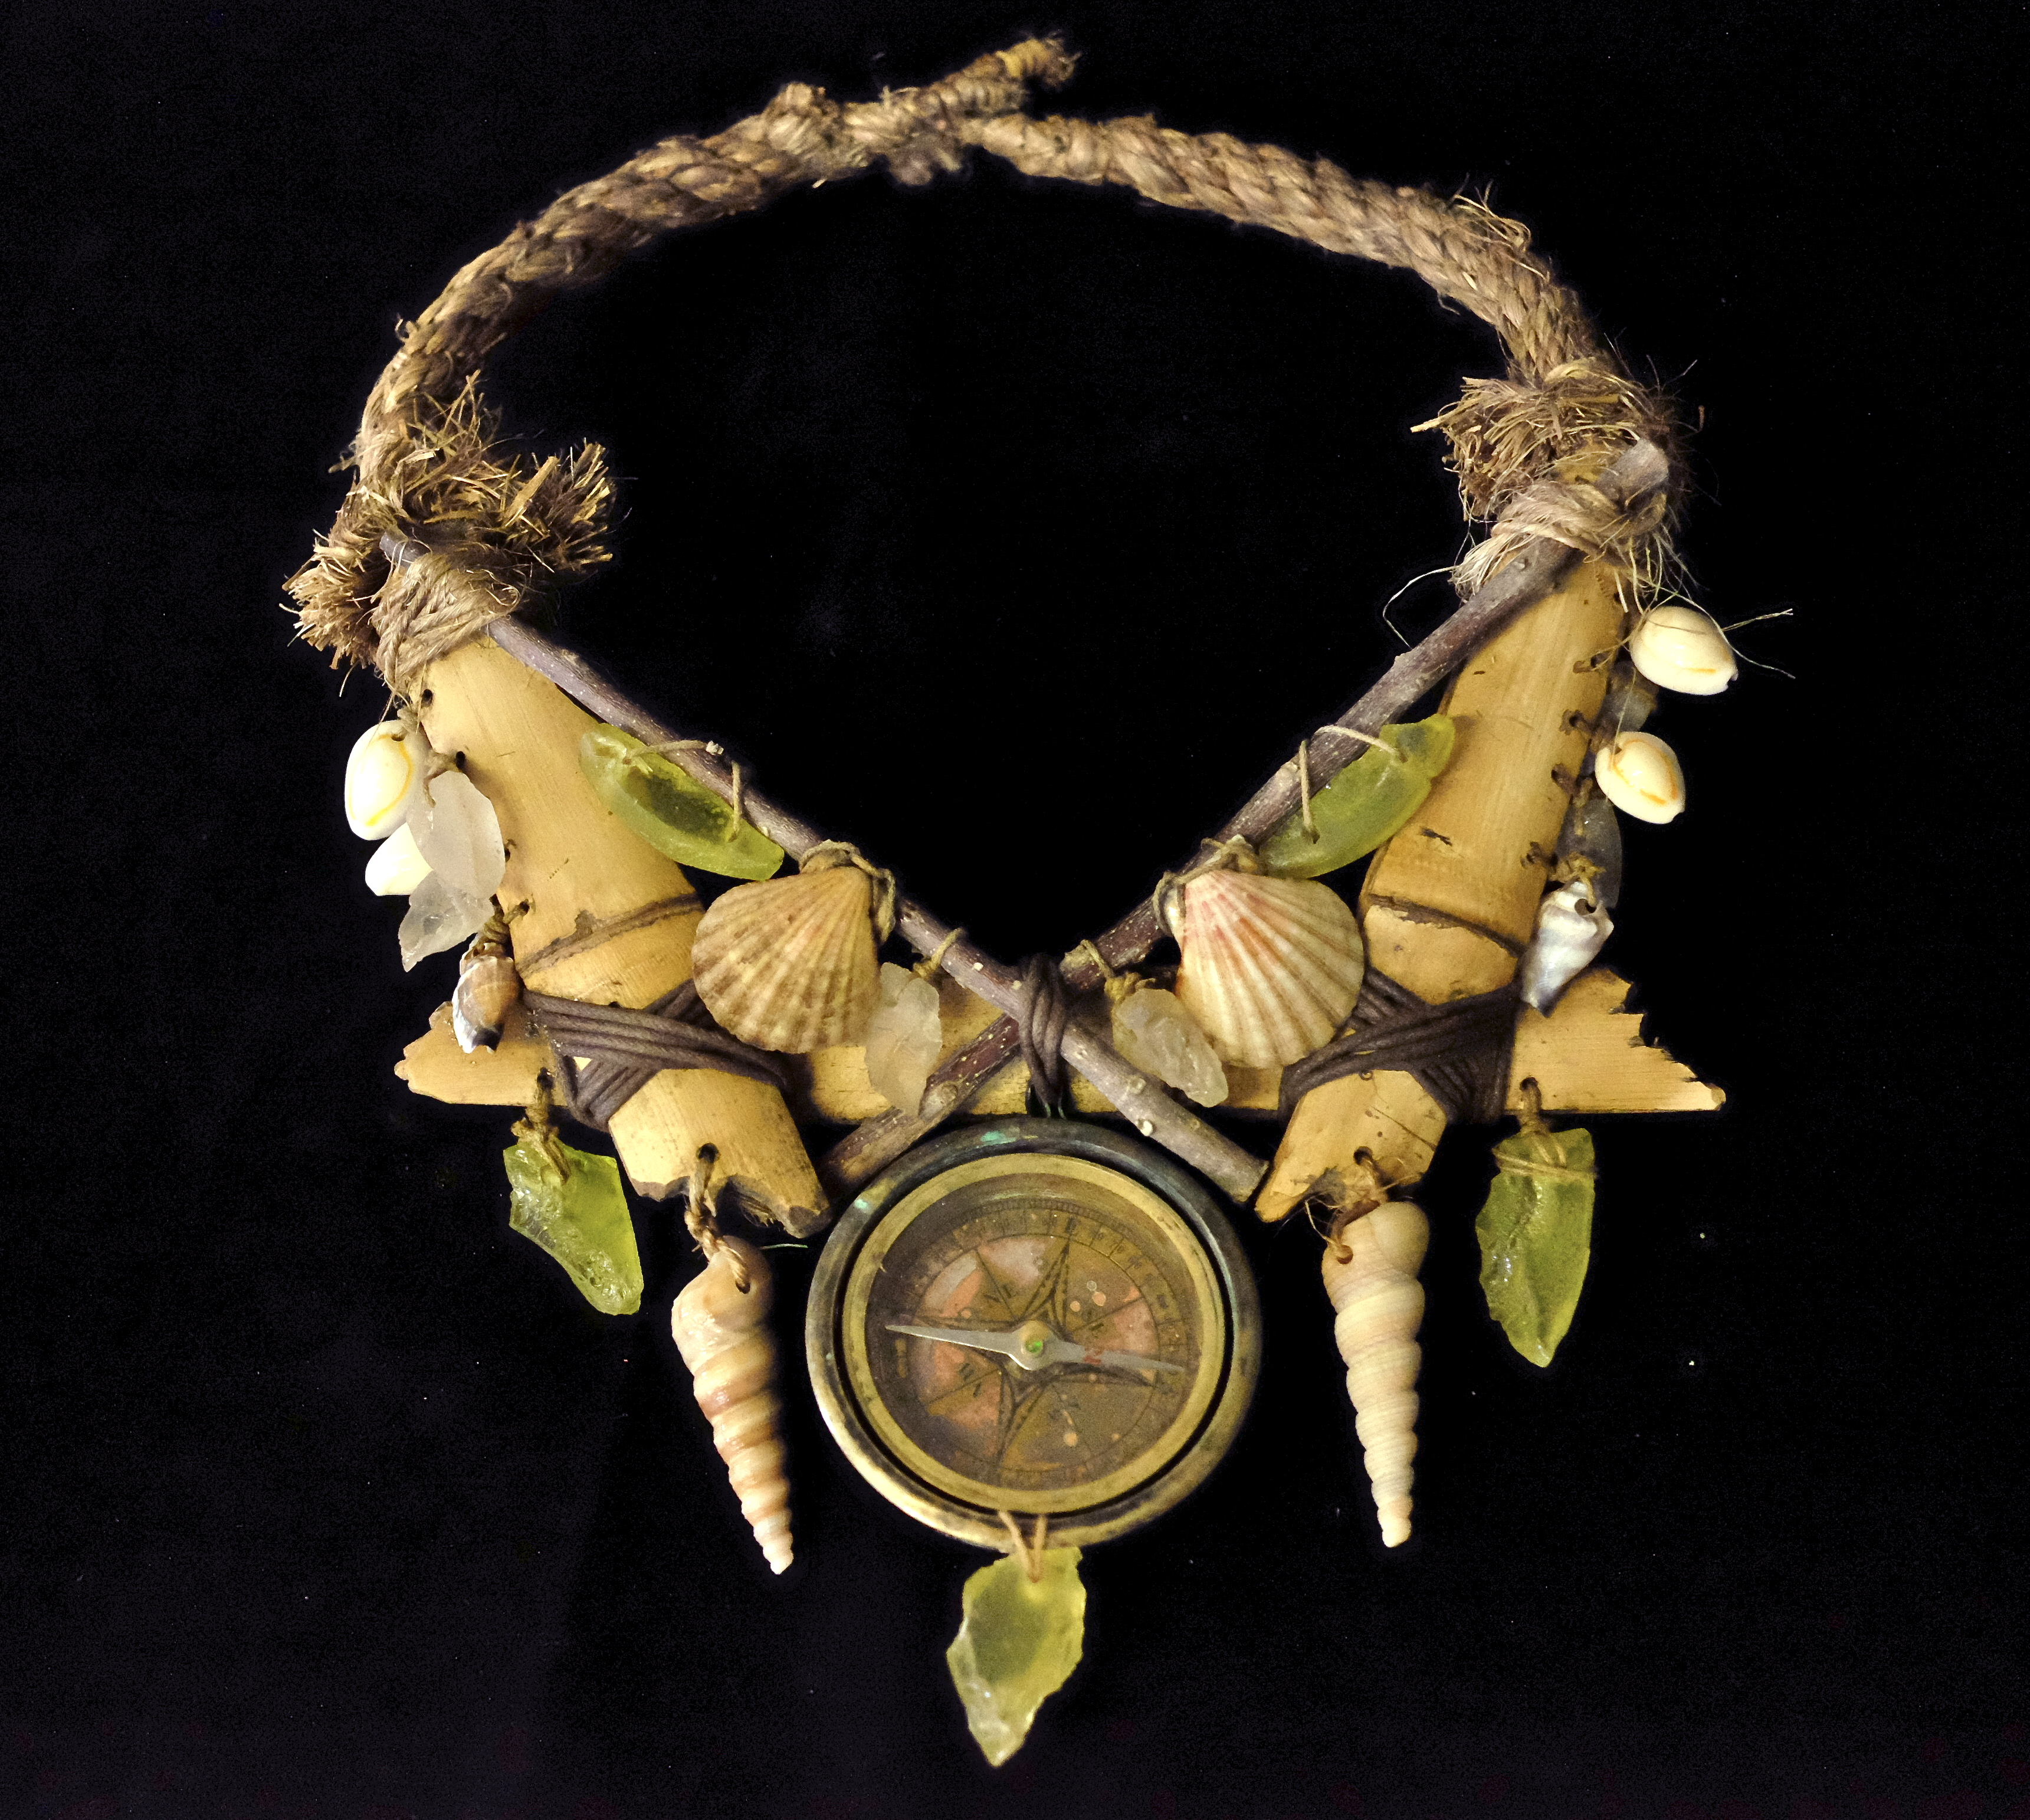 Immunity Necklace - Episode 7